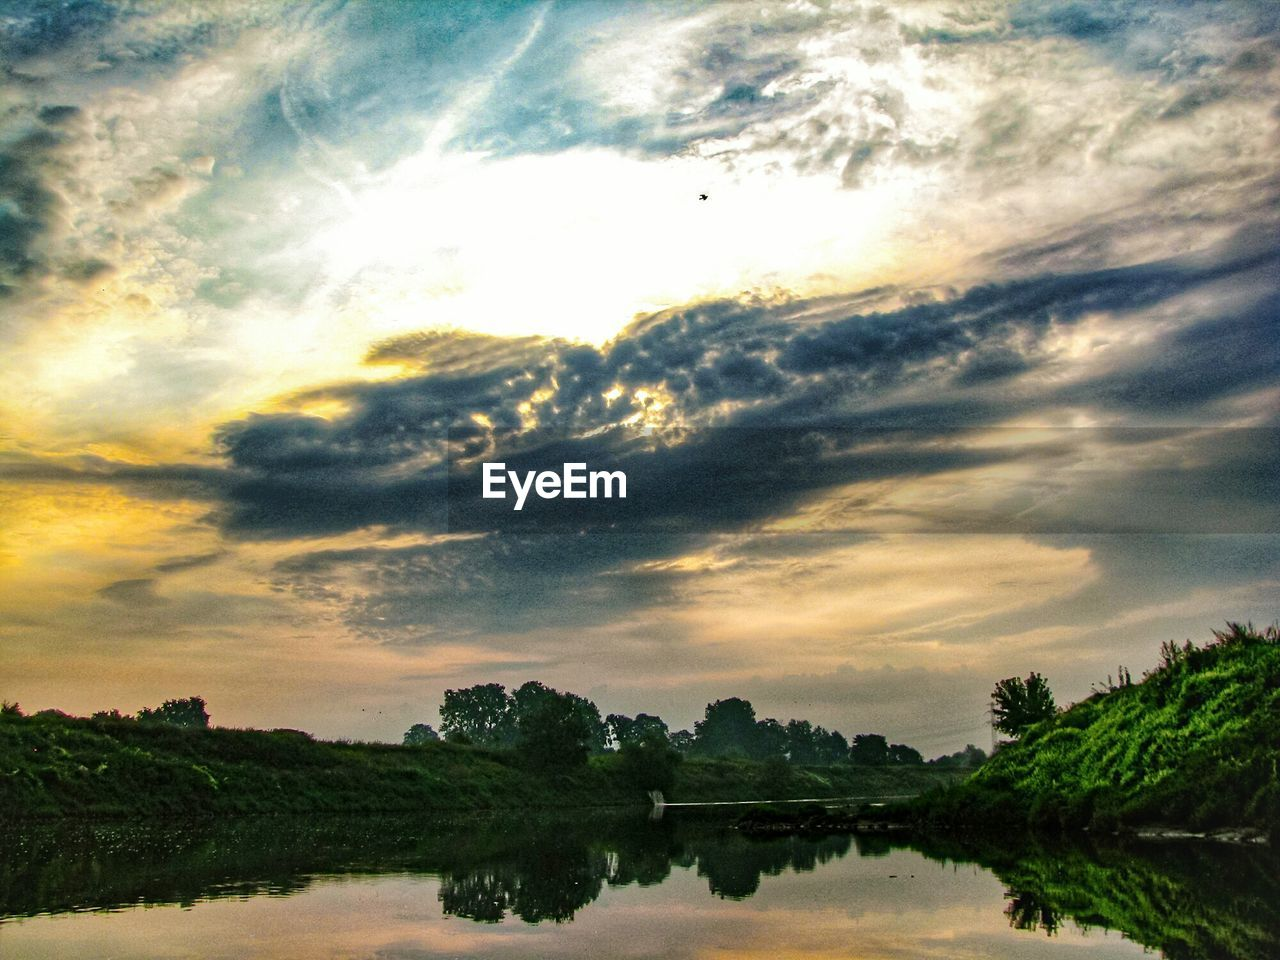 sky, cloud - sky, beauty in nature, tranquility, scenics - nature, tranquil scene, sunset, nature, tree, water, plant, no people, non-urban scene, reflection, environment, idyllic, landscape, lake, outdoors